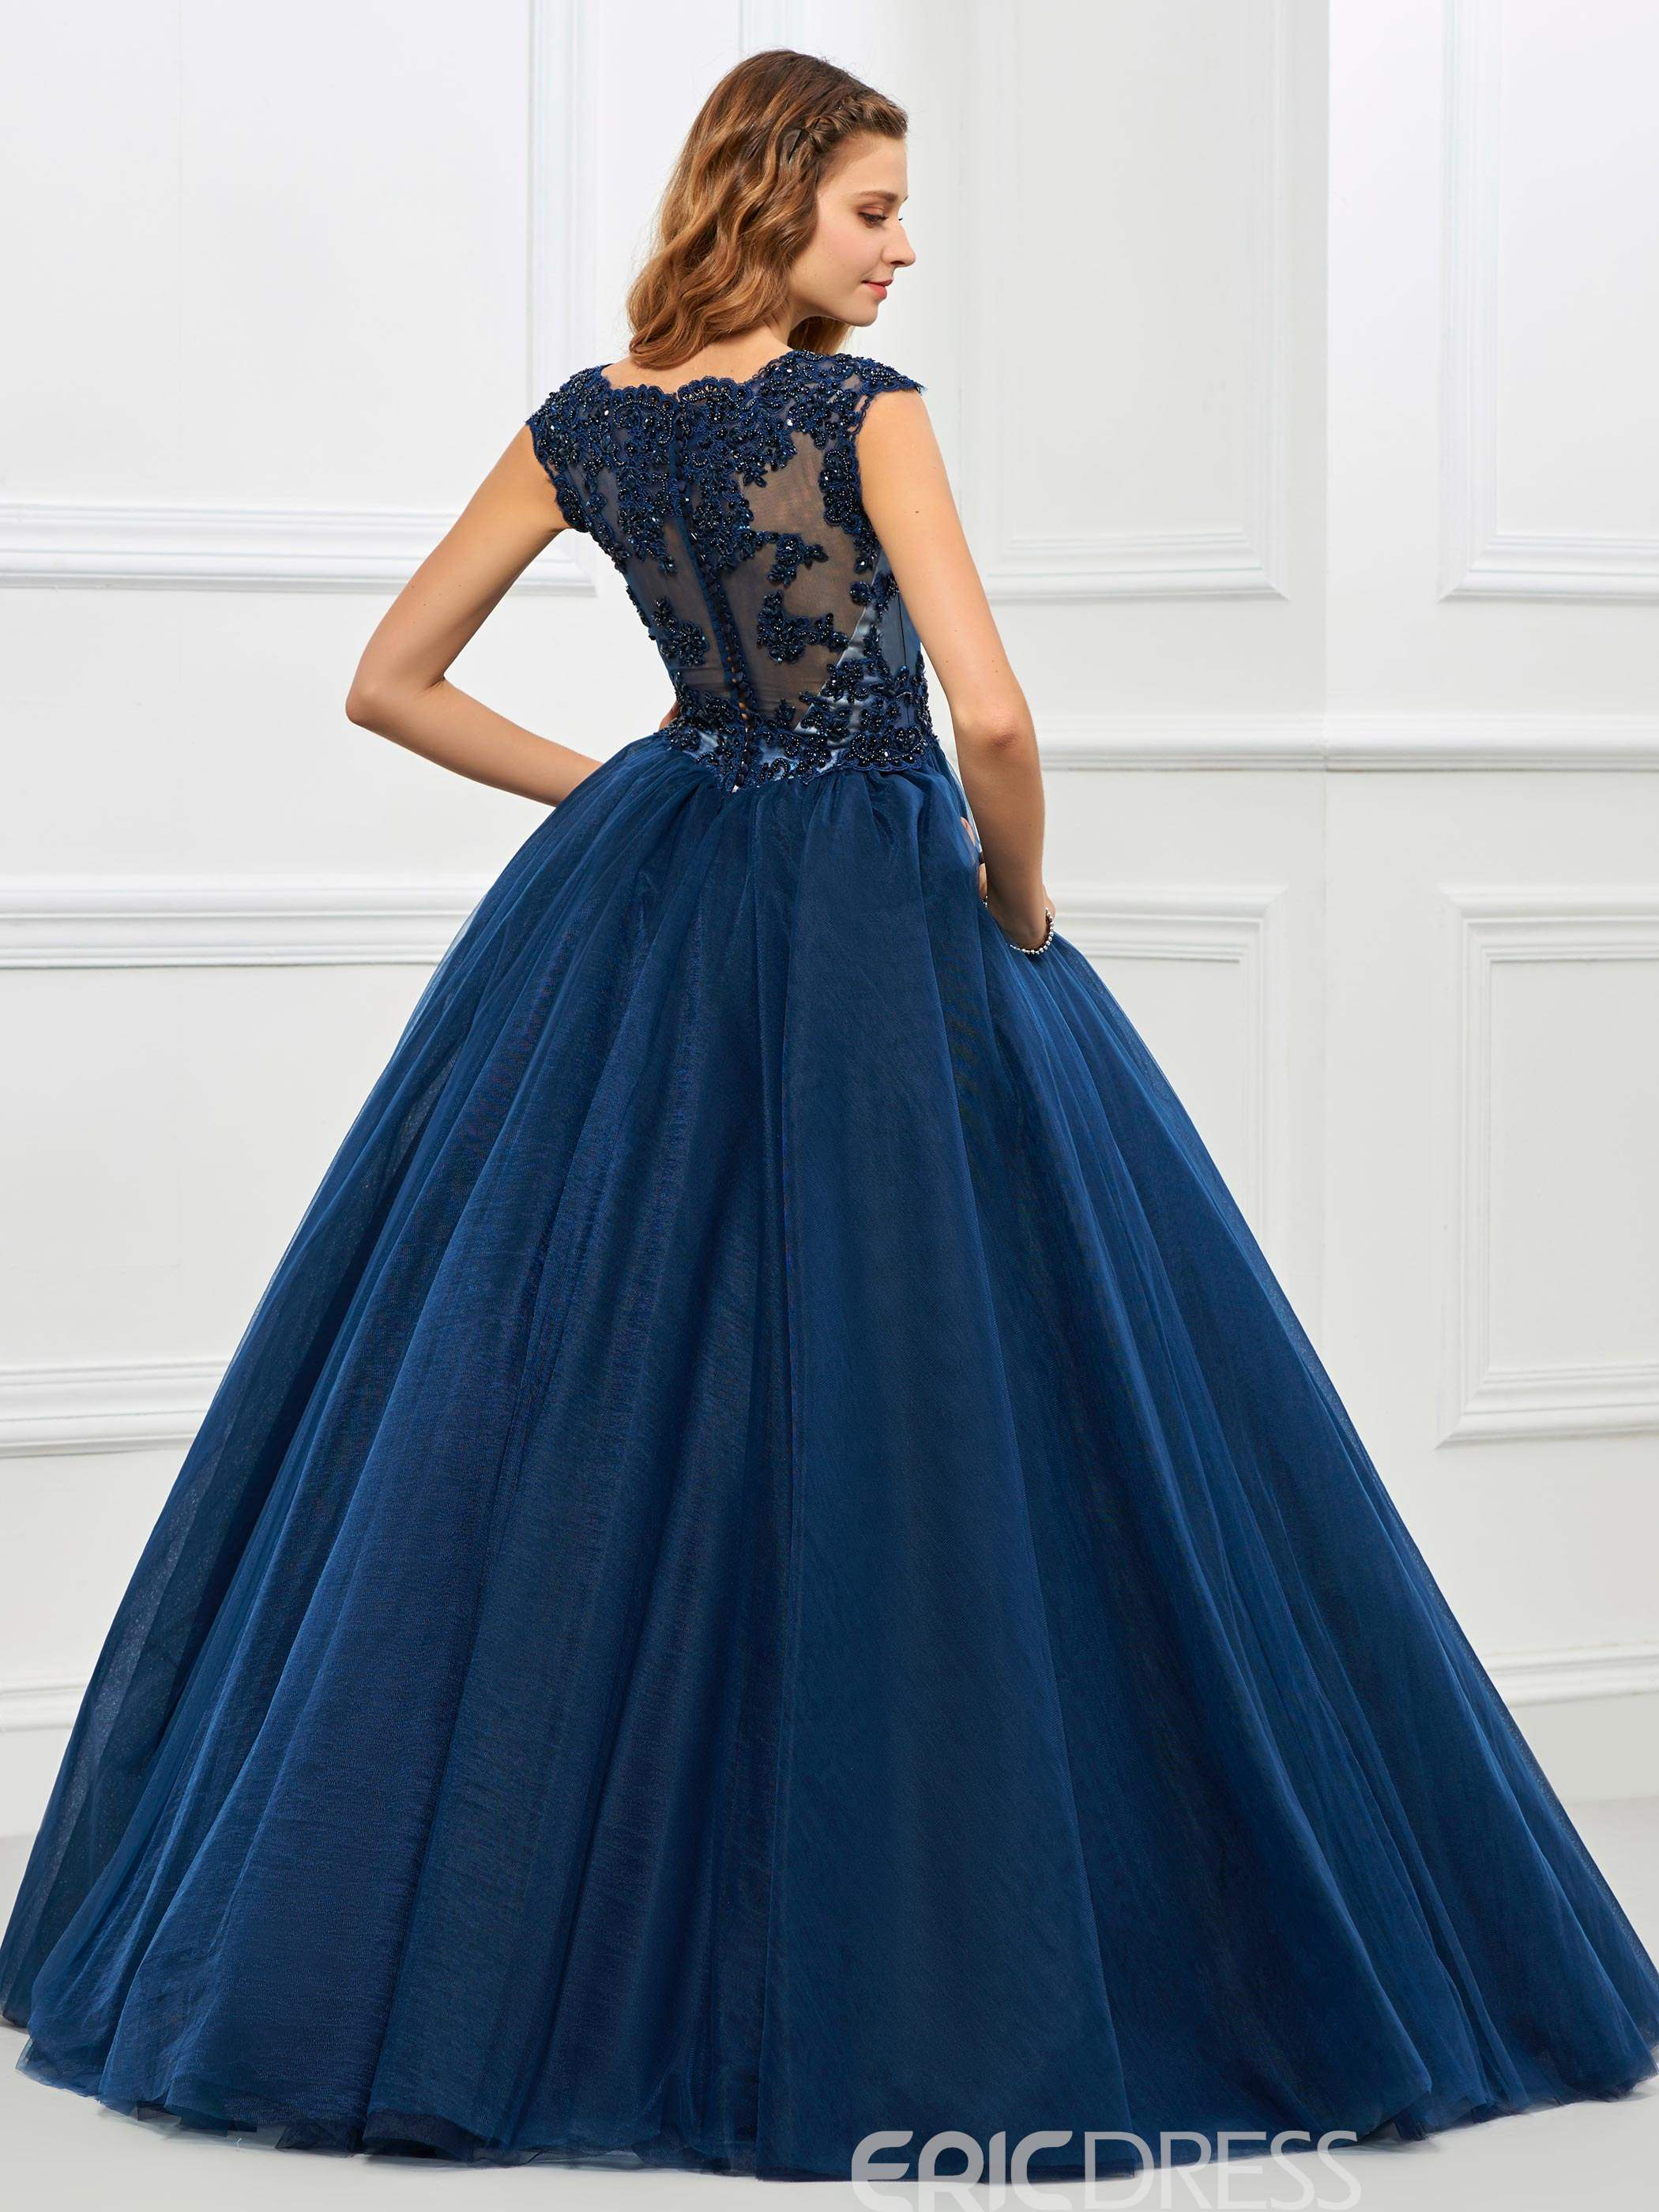 Ericdress Cap Sleeve Applique Tulle Ball Quinceanera Gown With Beadings